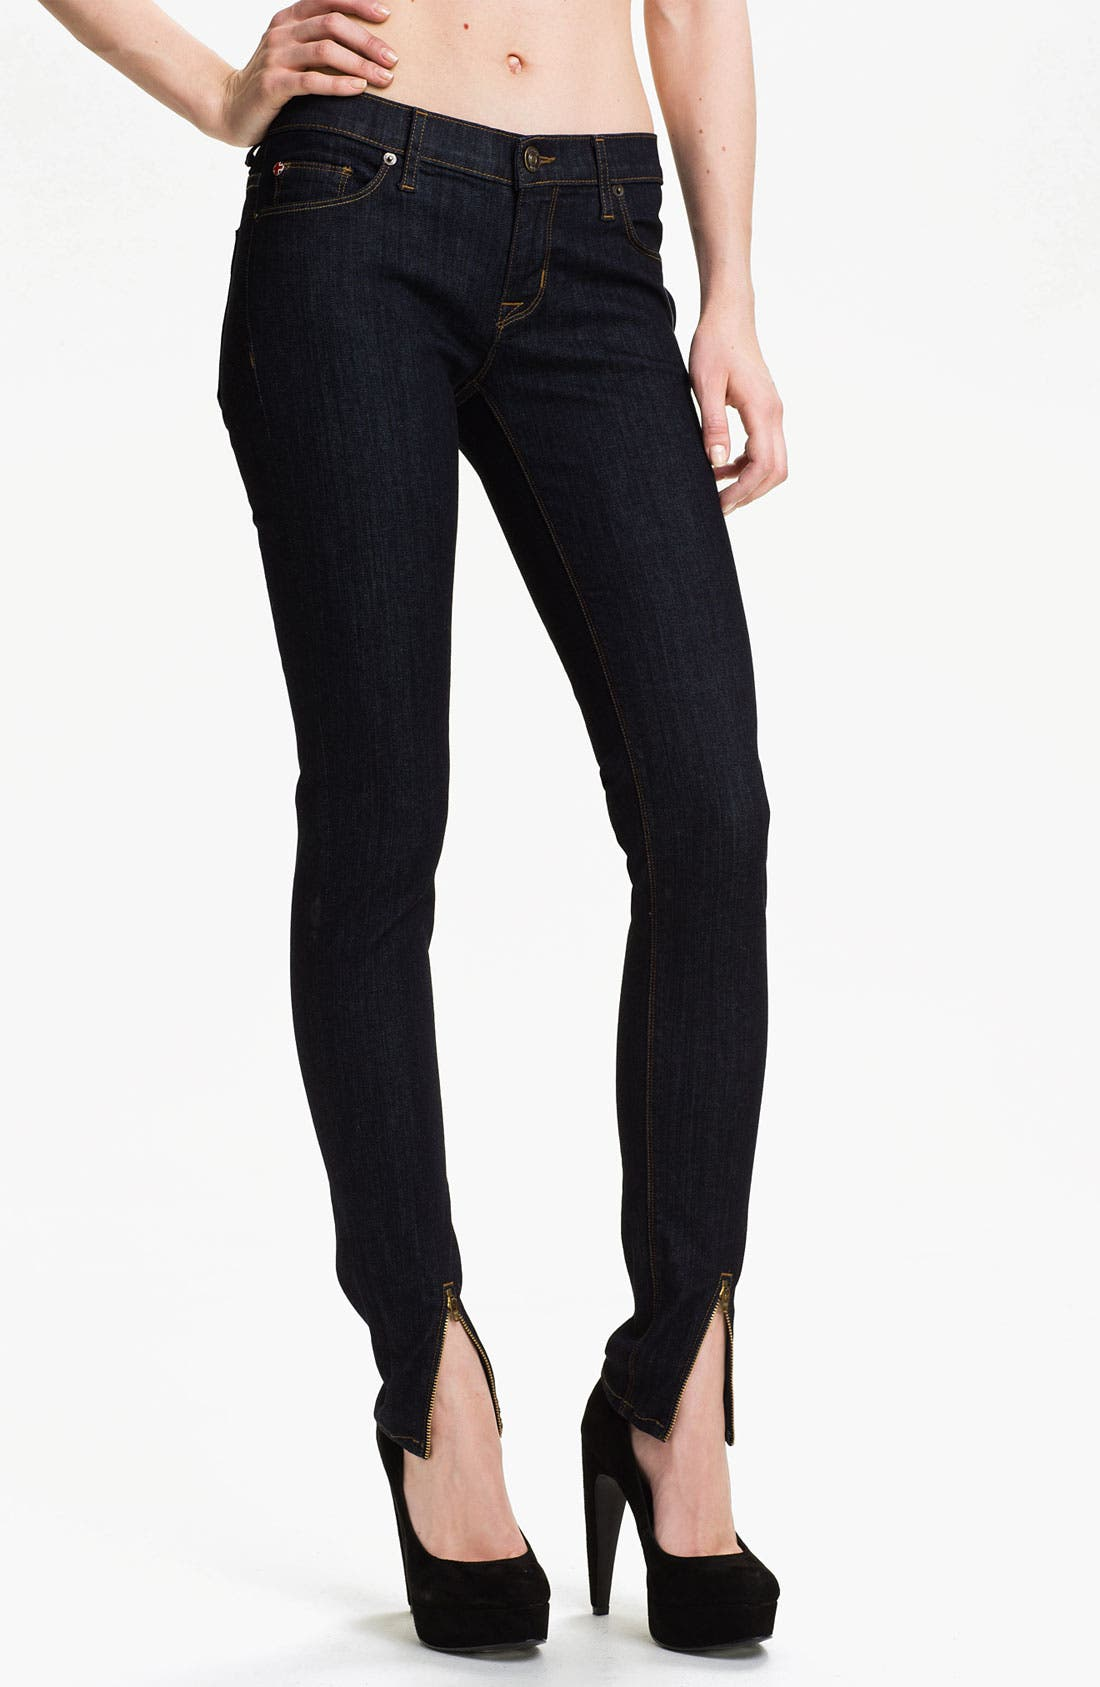 Alternate Image 1 Selected - Hudson Jeans 'Juliette' Ankle Zip Super Skinny Jeans (Rinse)